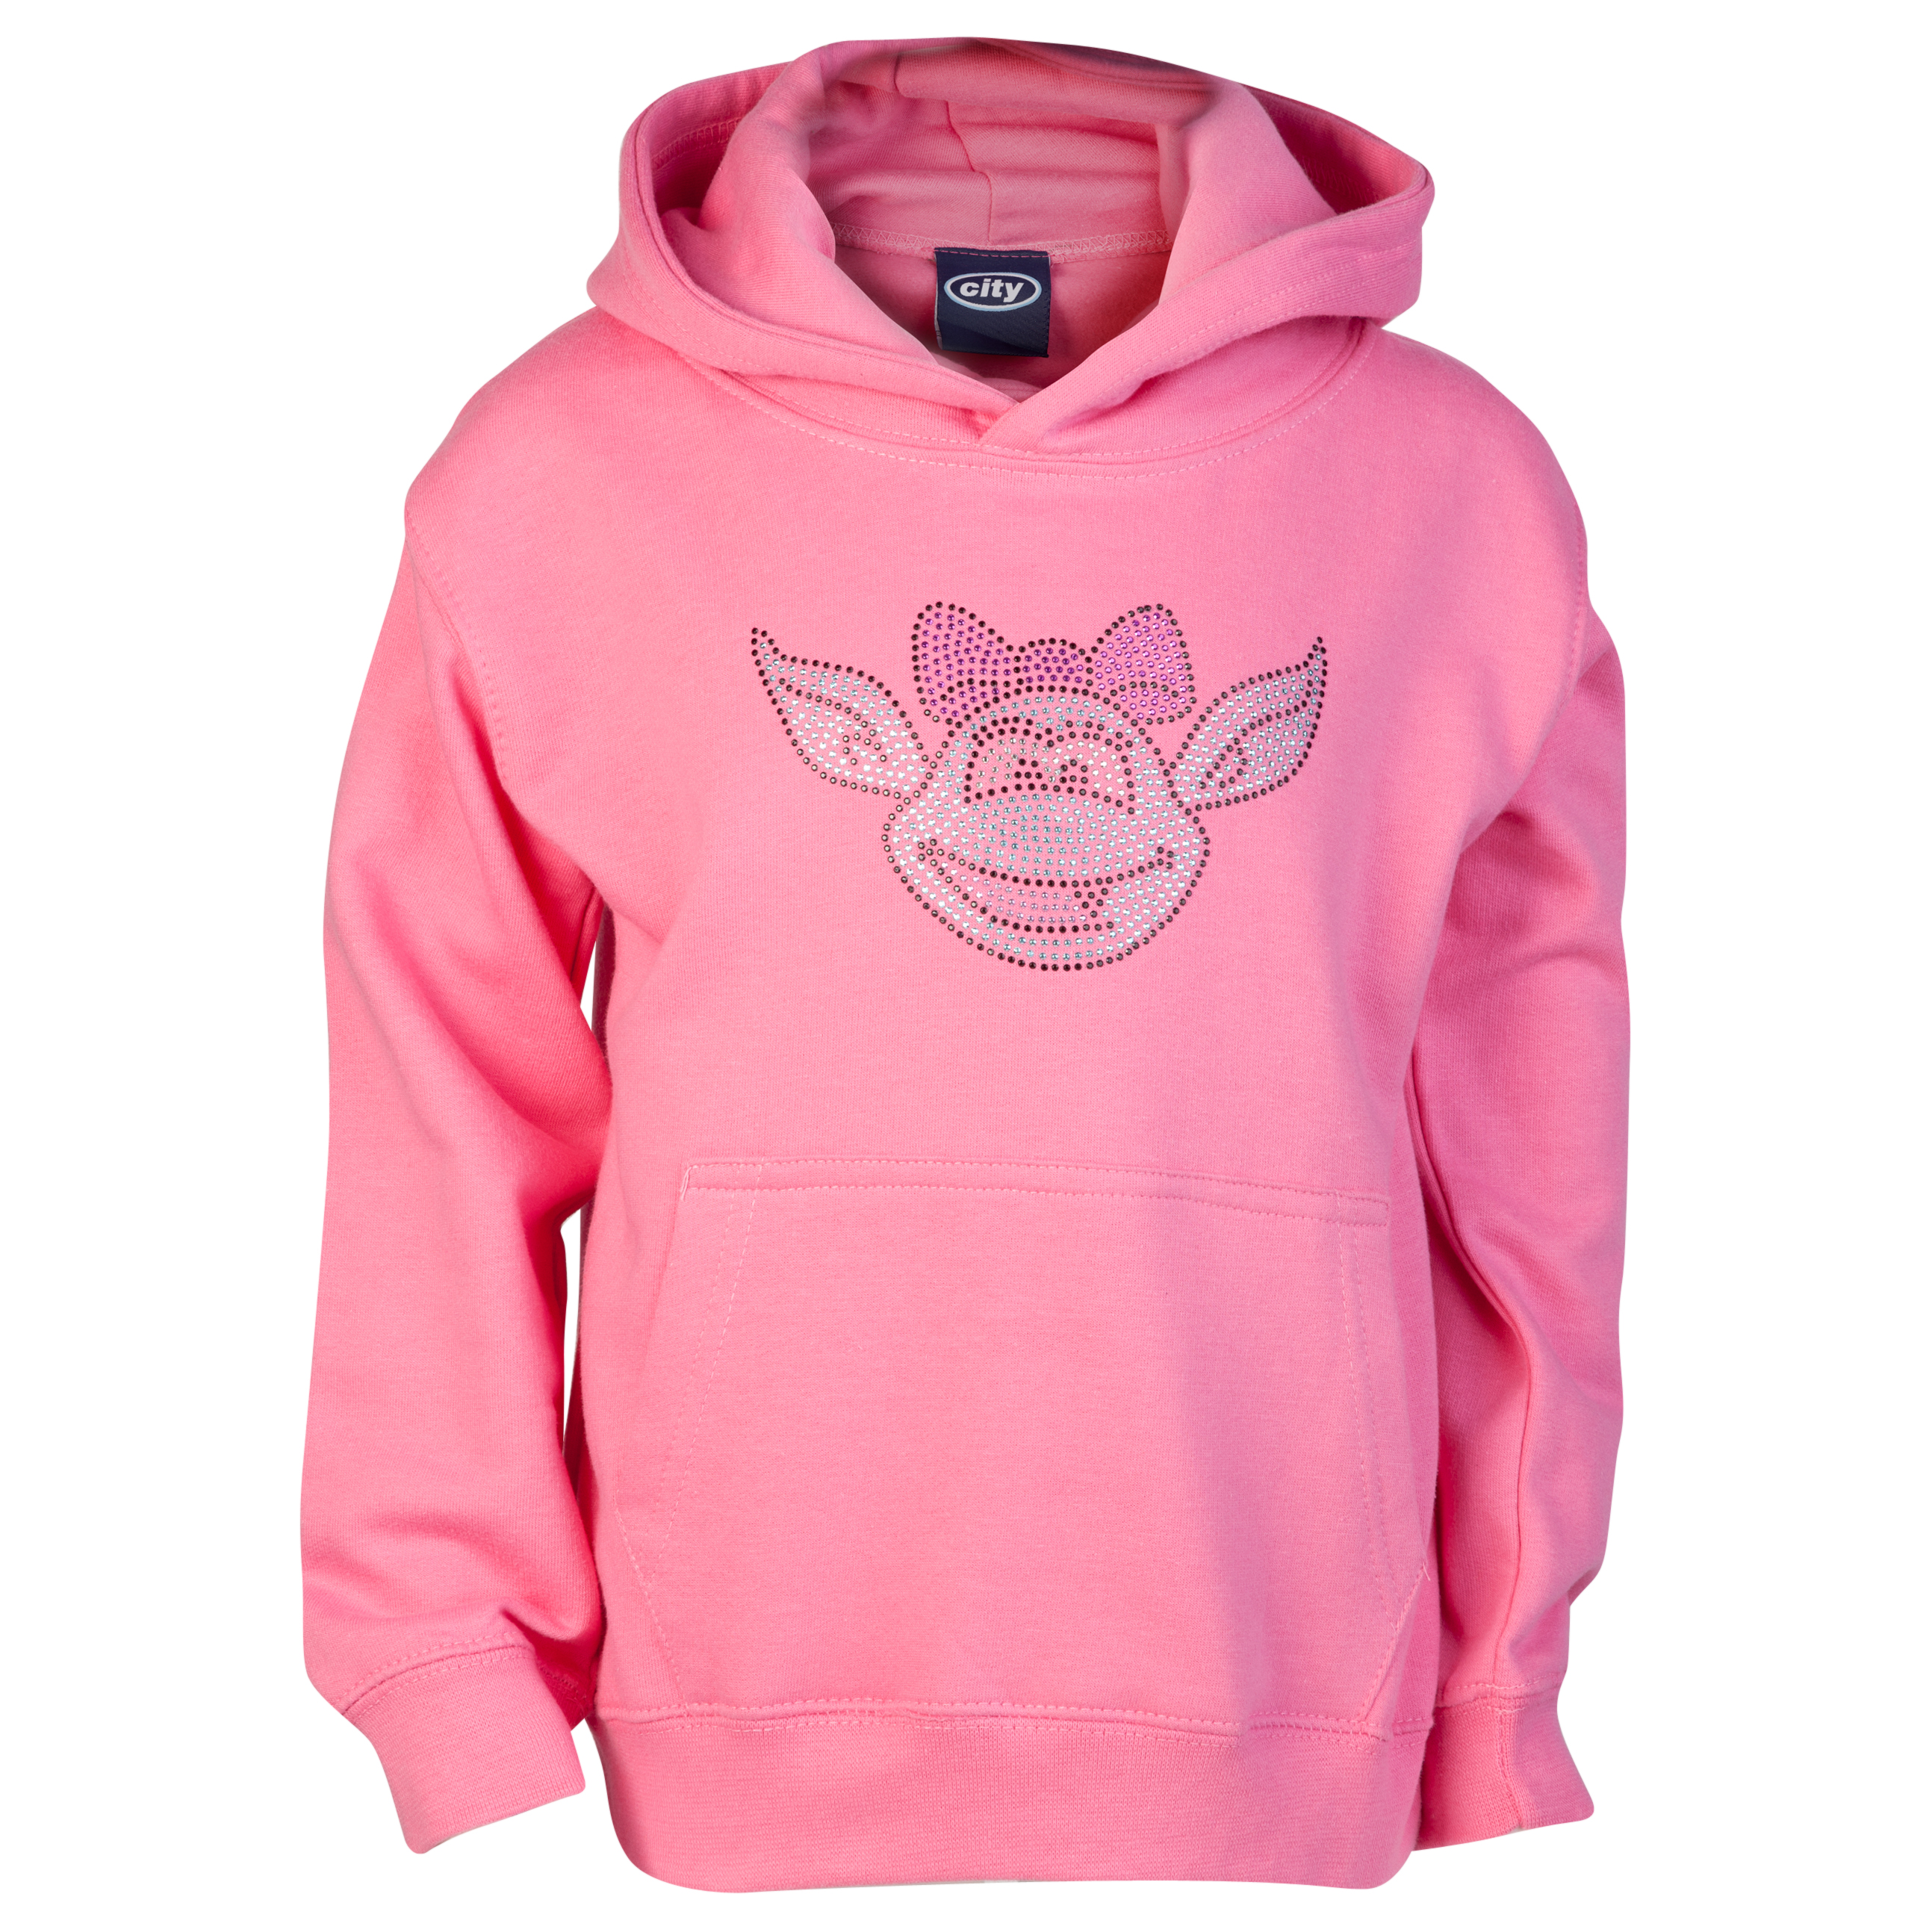 Manchester City Rhinestone Mascot Hoodie - Candyfloss Pink - Infant Girls